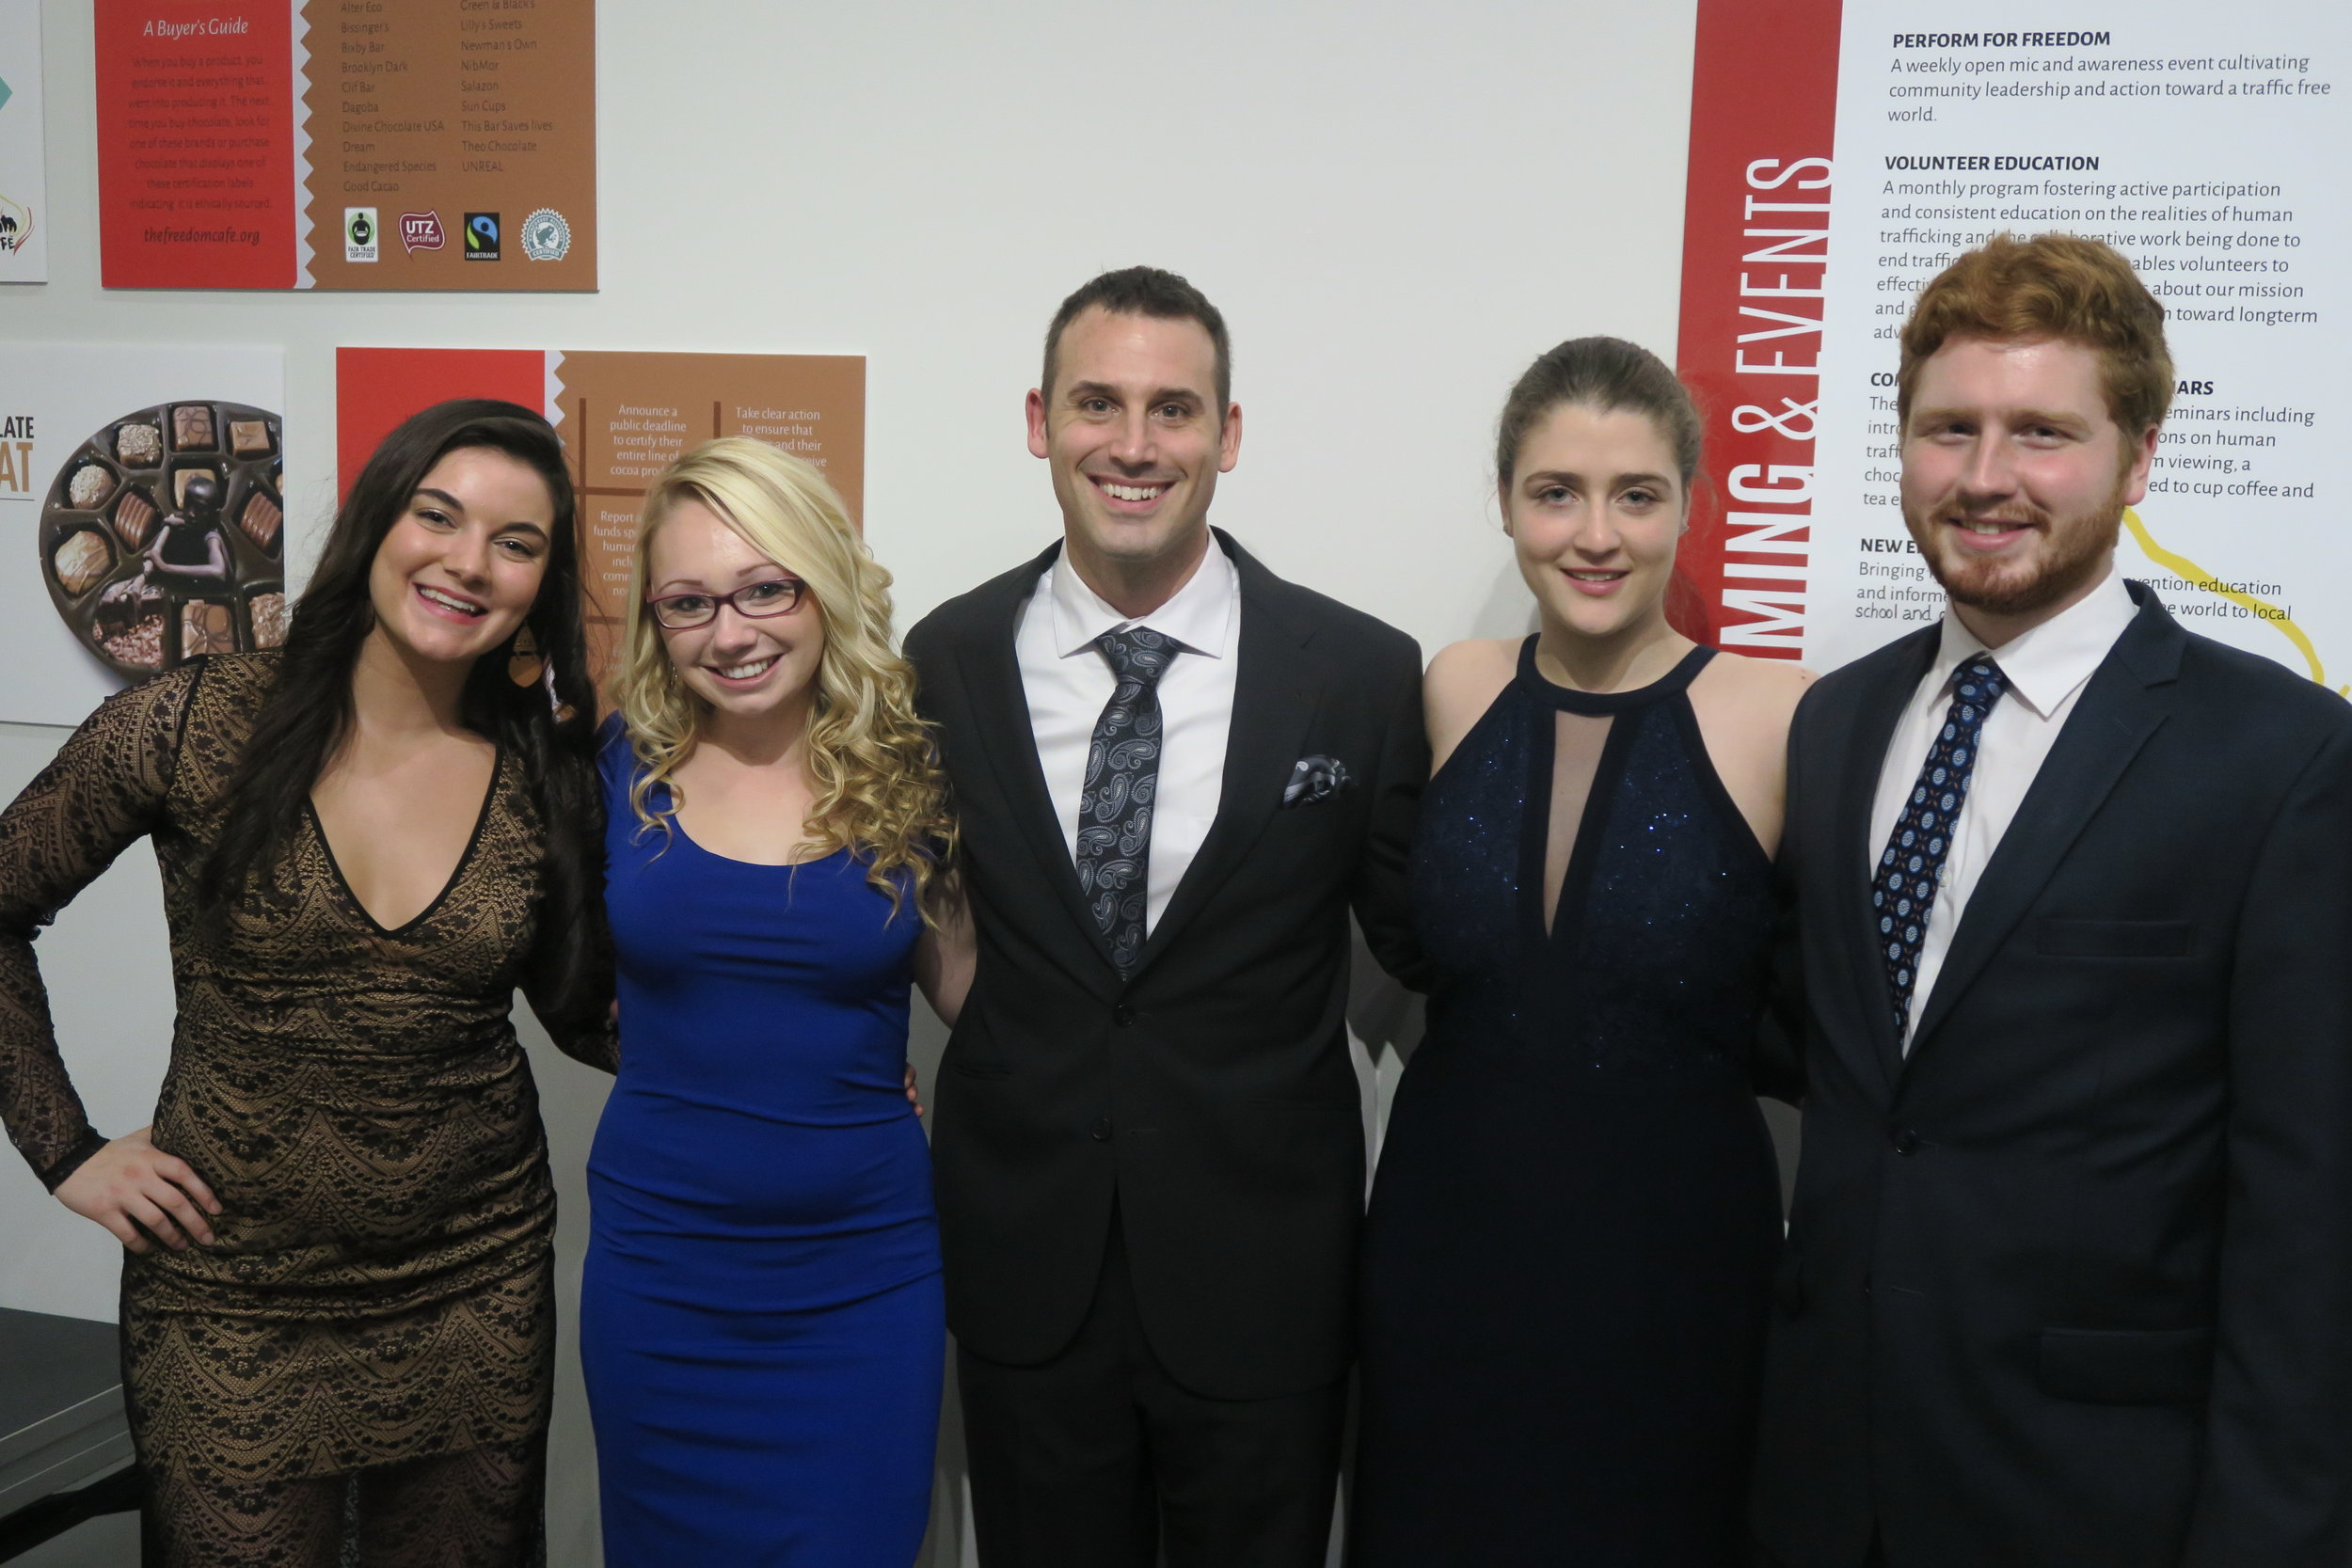 Shariss (Left) with members of The Freedom Café Student Outreach Team at our Fall 2016 Gala